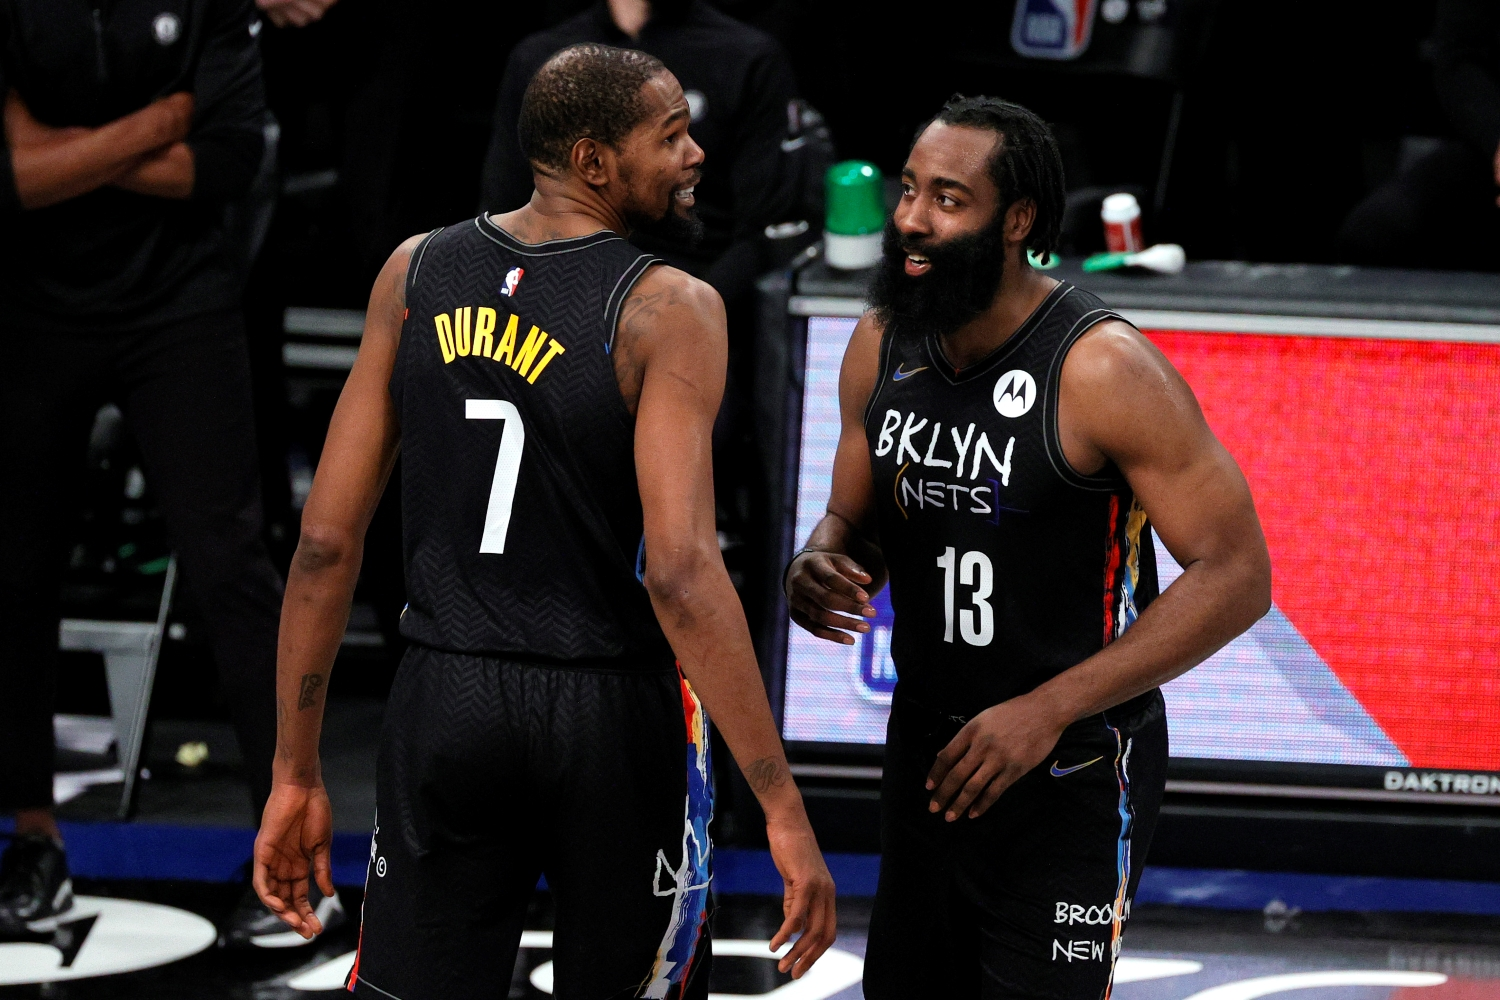 Brooklyn Nets star Kevin Durant and James Harden react after a play during the second half of a game against the LA Clippers.